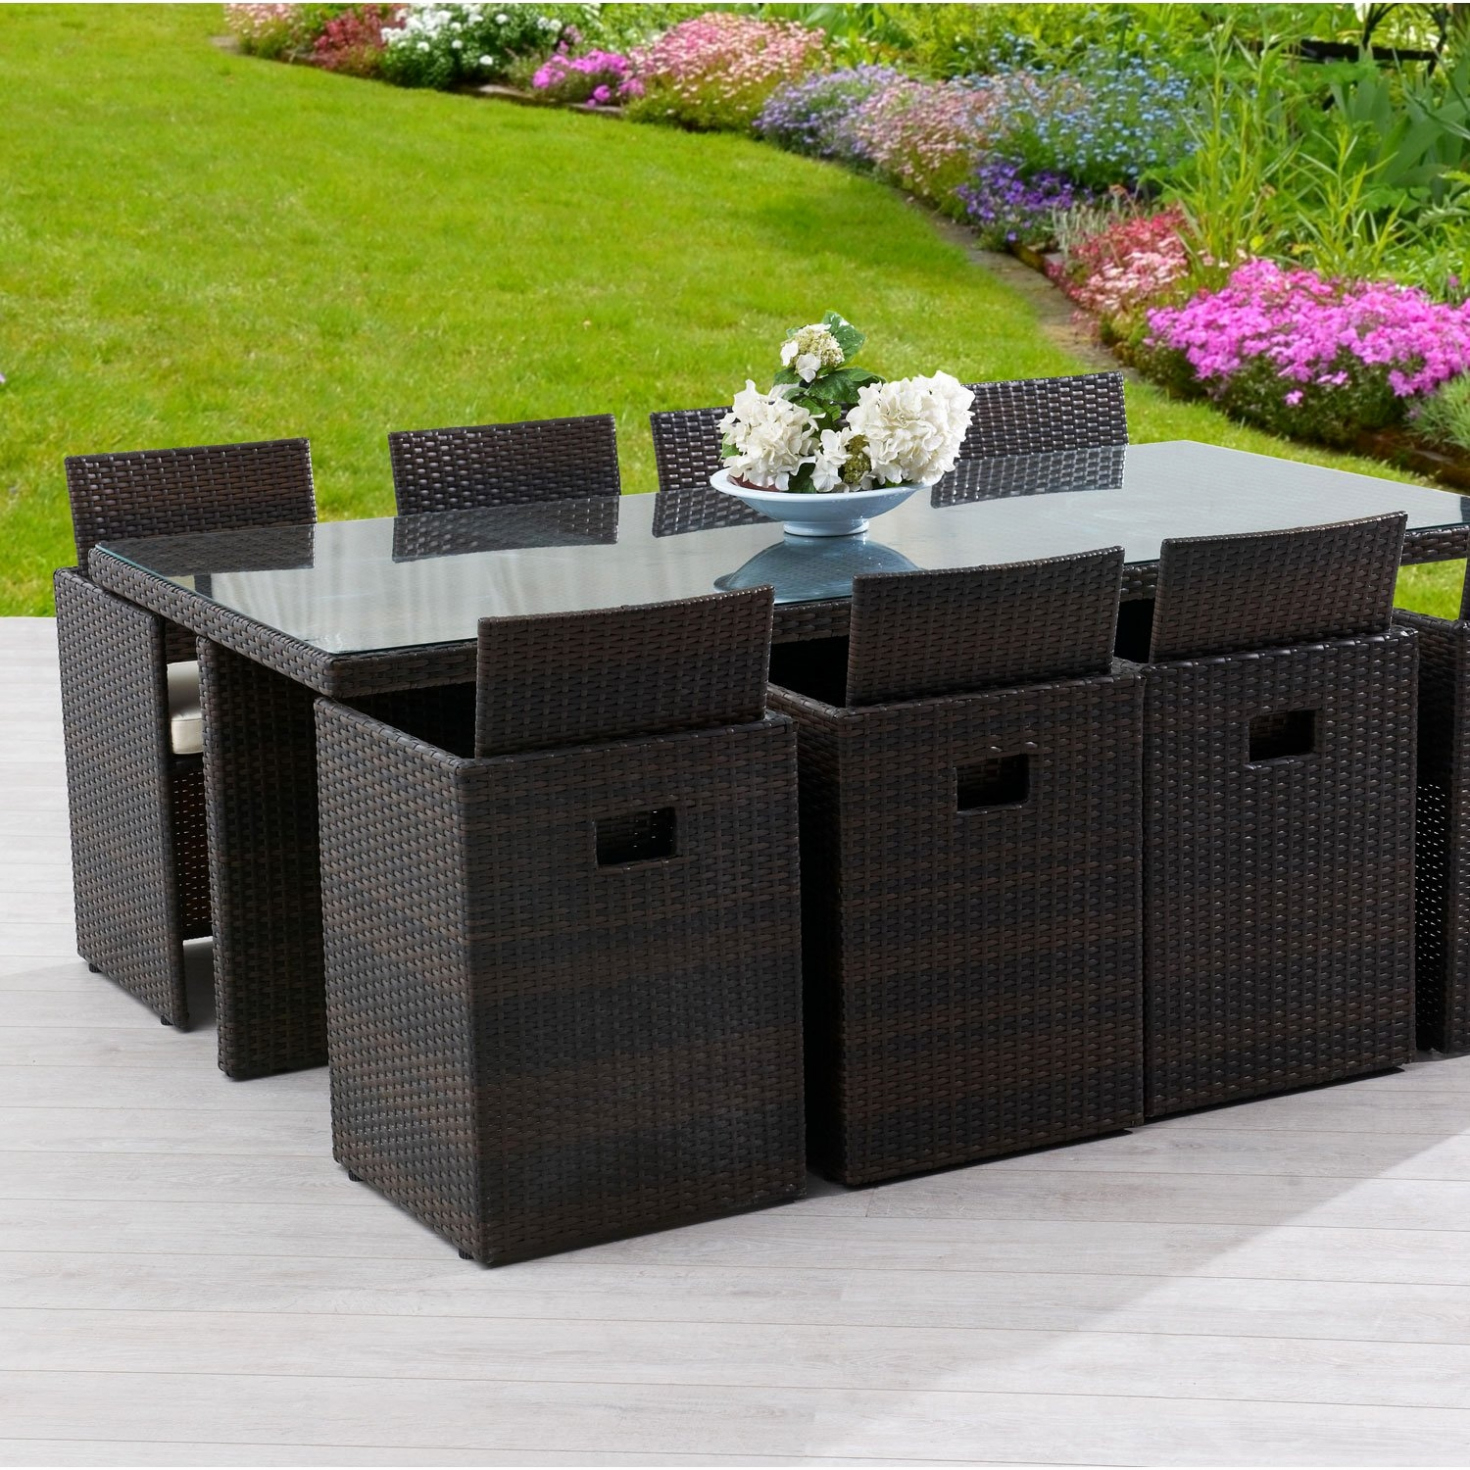 salon de jardin pvc id es de d coration int rieure french decor. Black Bedroom Furniture Sets. Home Design Ideas